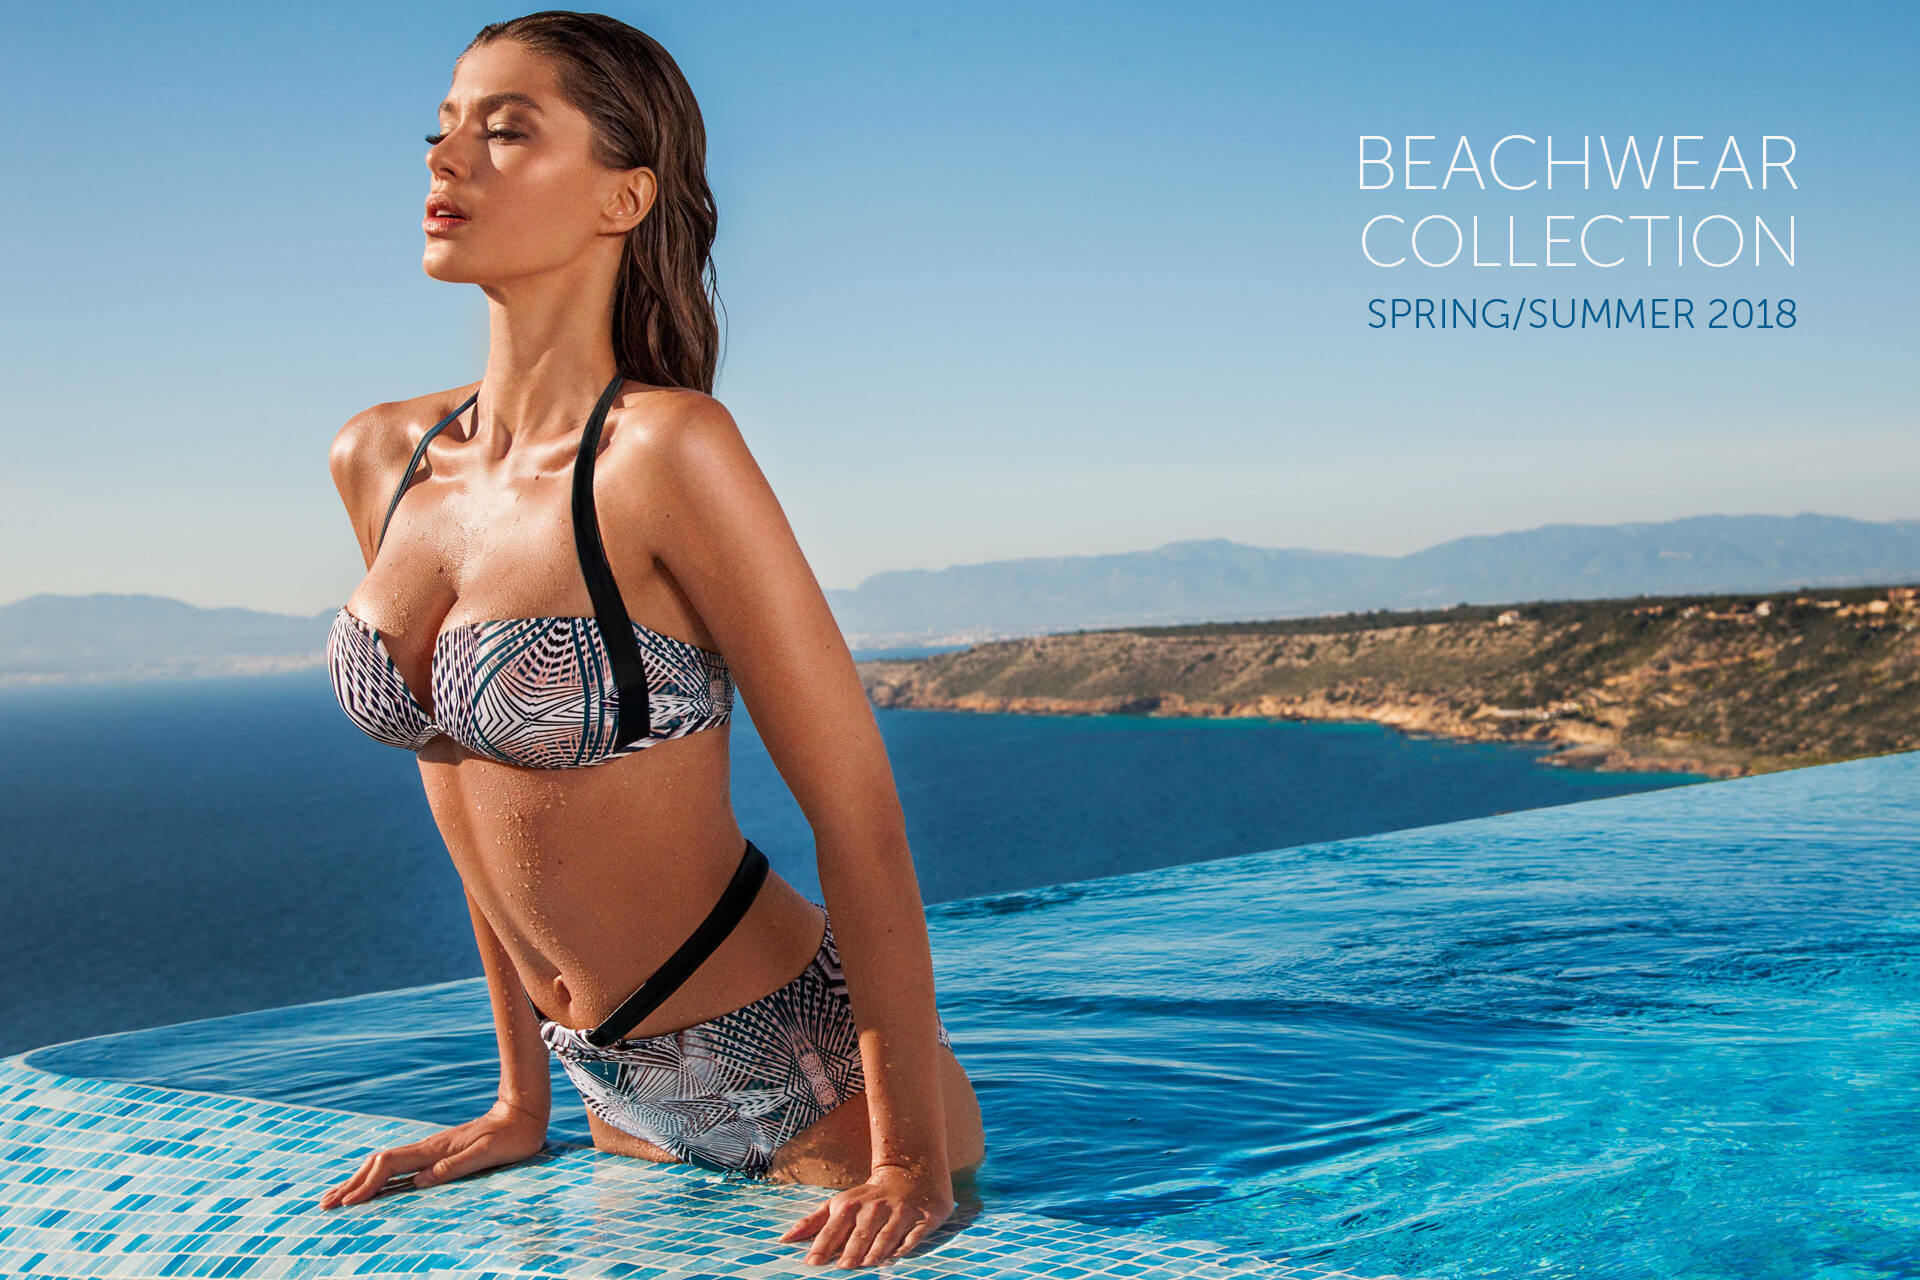 Beachwear Collection 2018